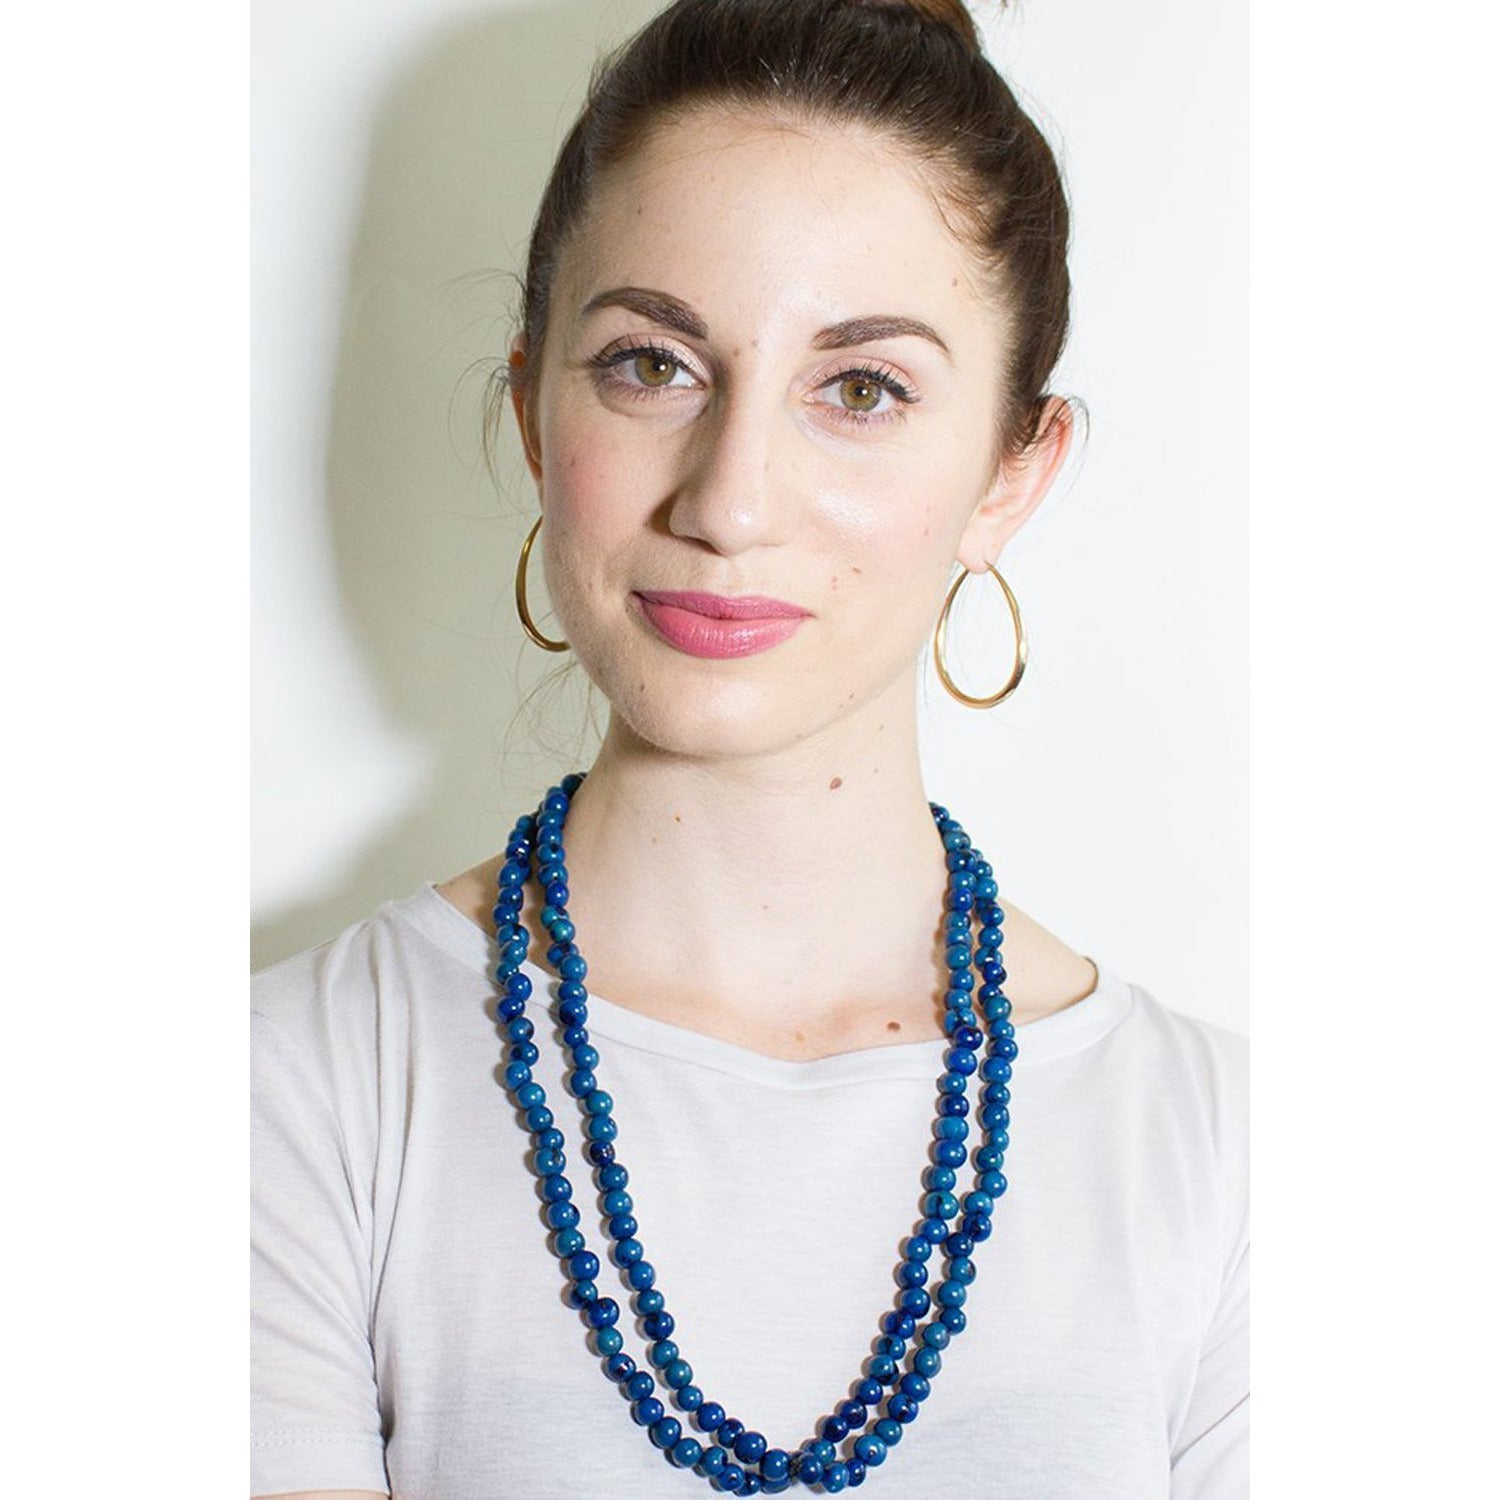 Acai Bead Necklaces by Melko in Electric Blue